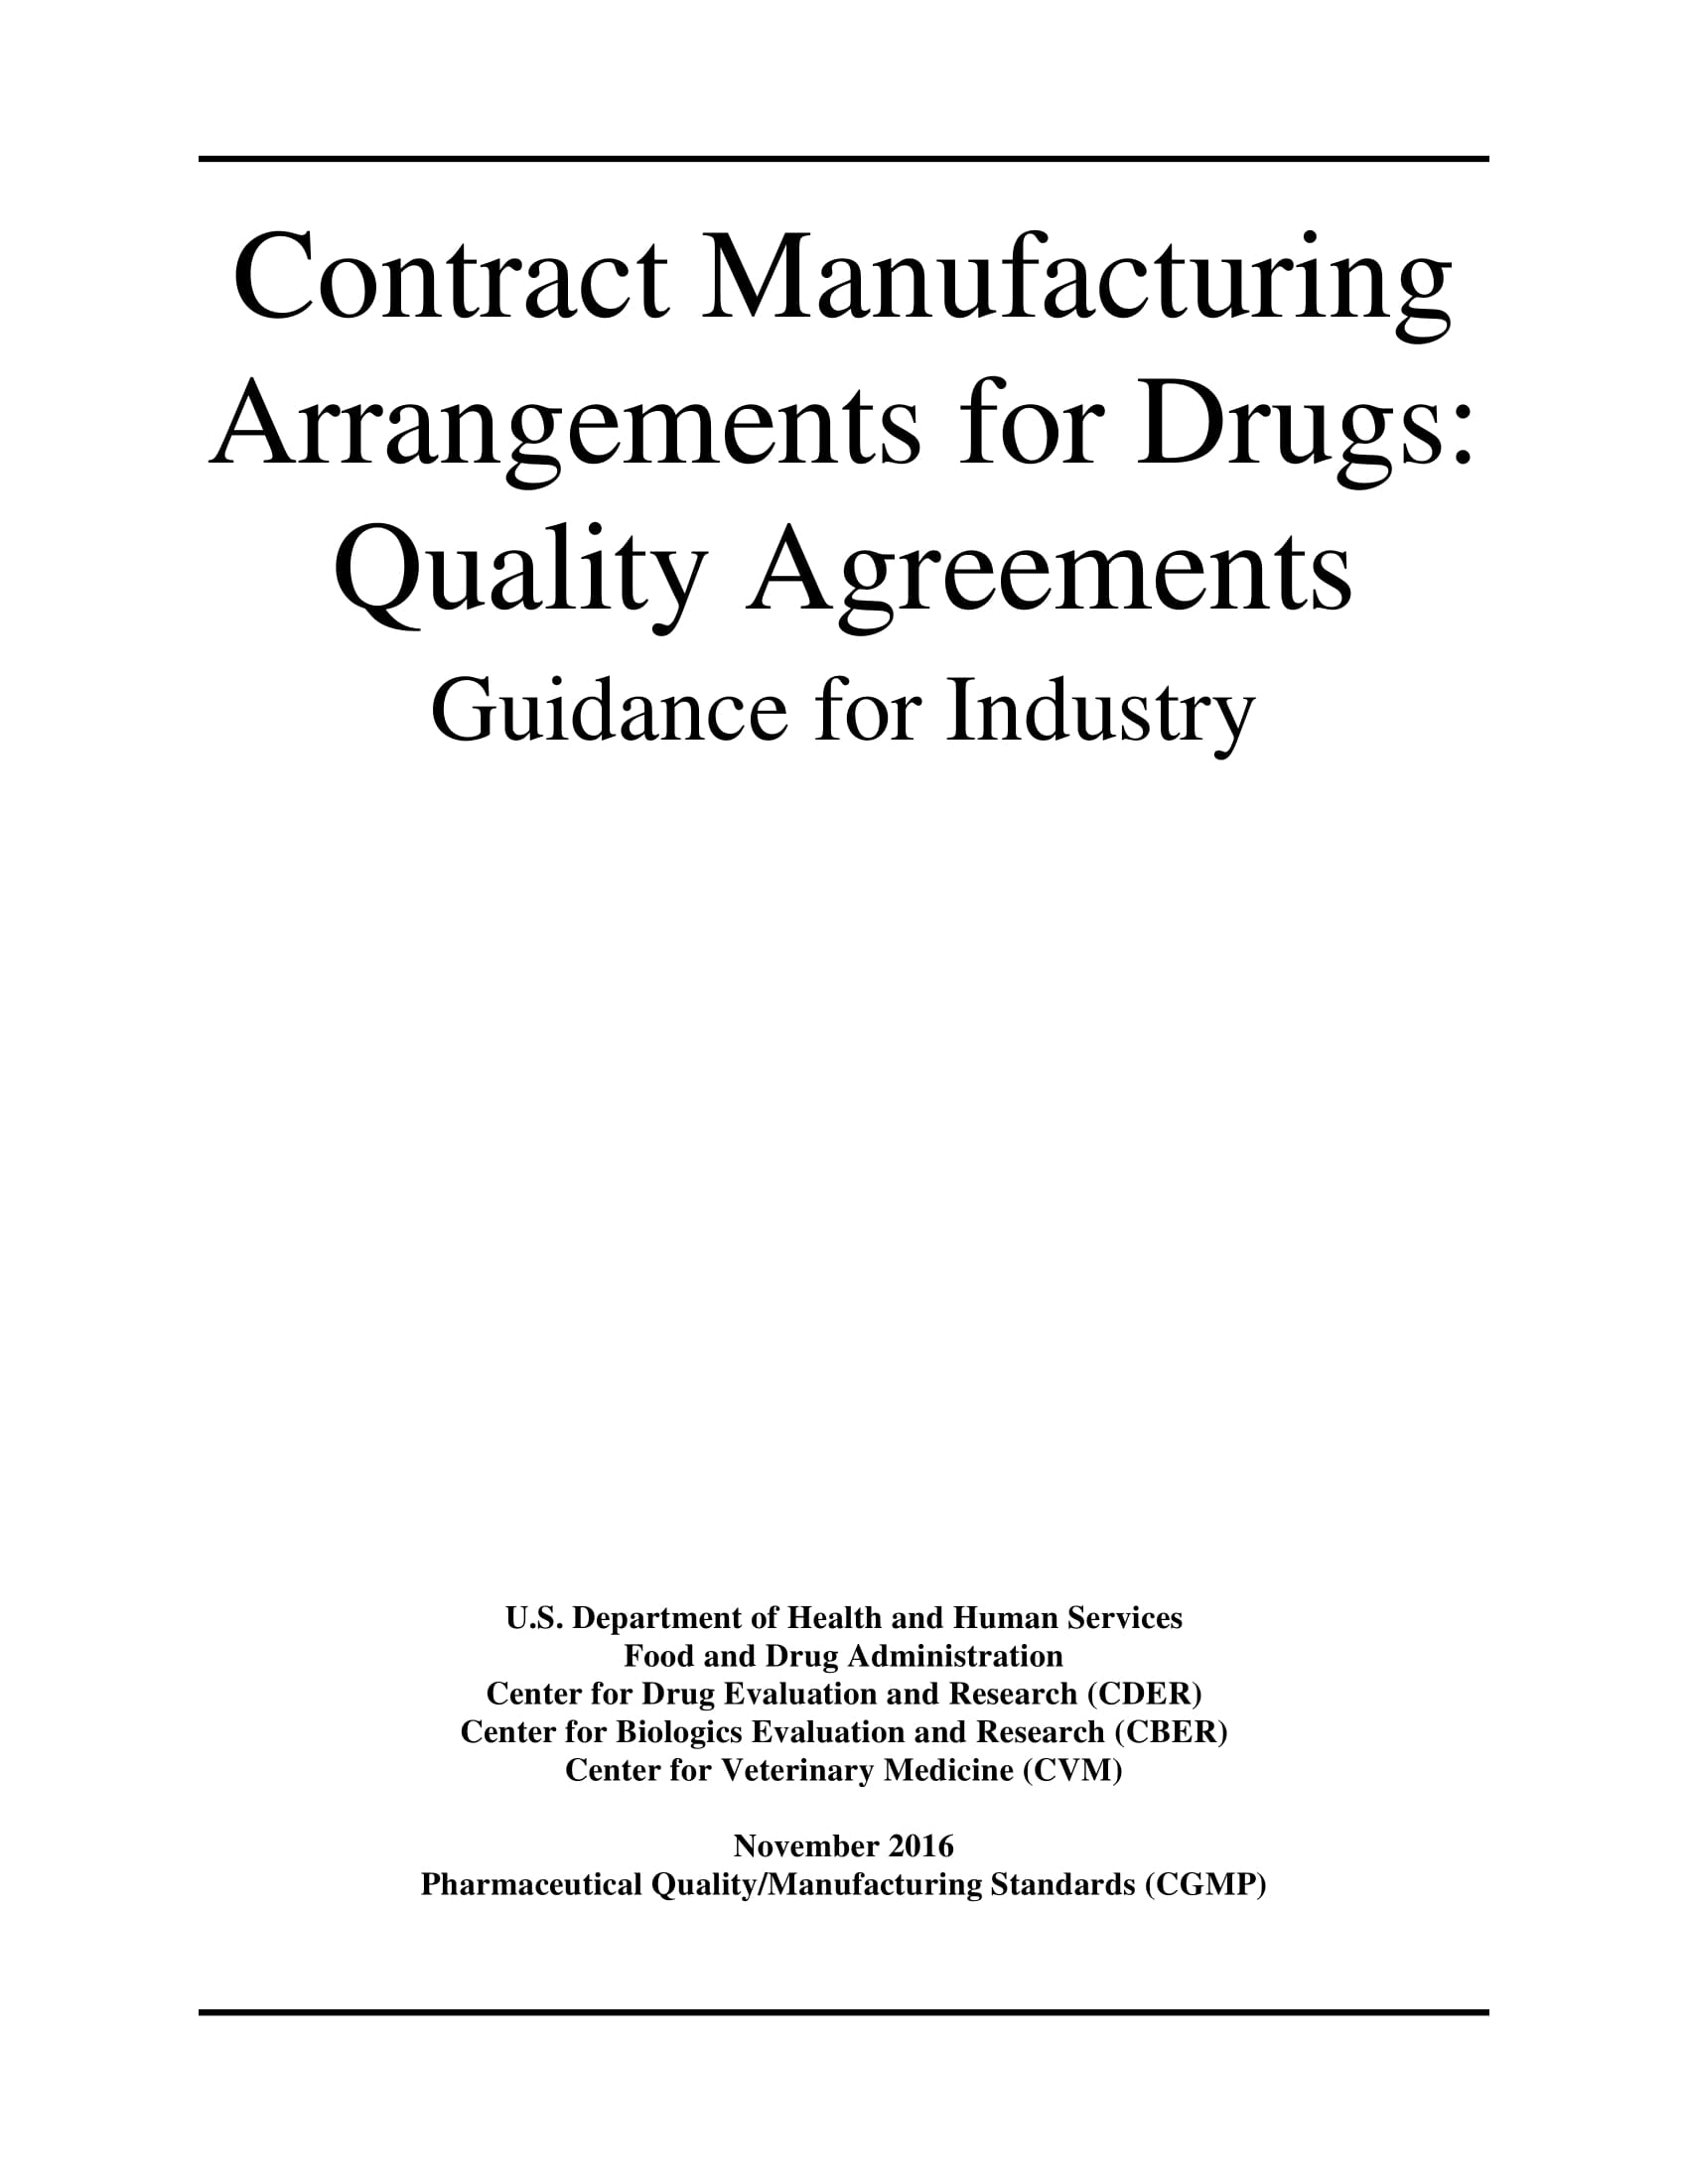 contract manufacturing arrangement for drugs quality agreements guidance for industry example 01